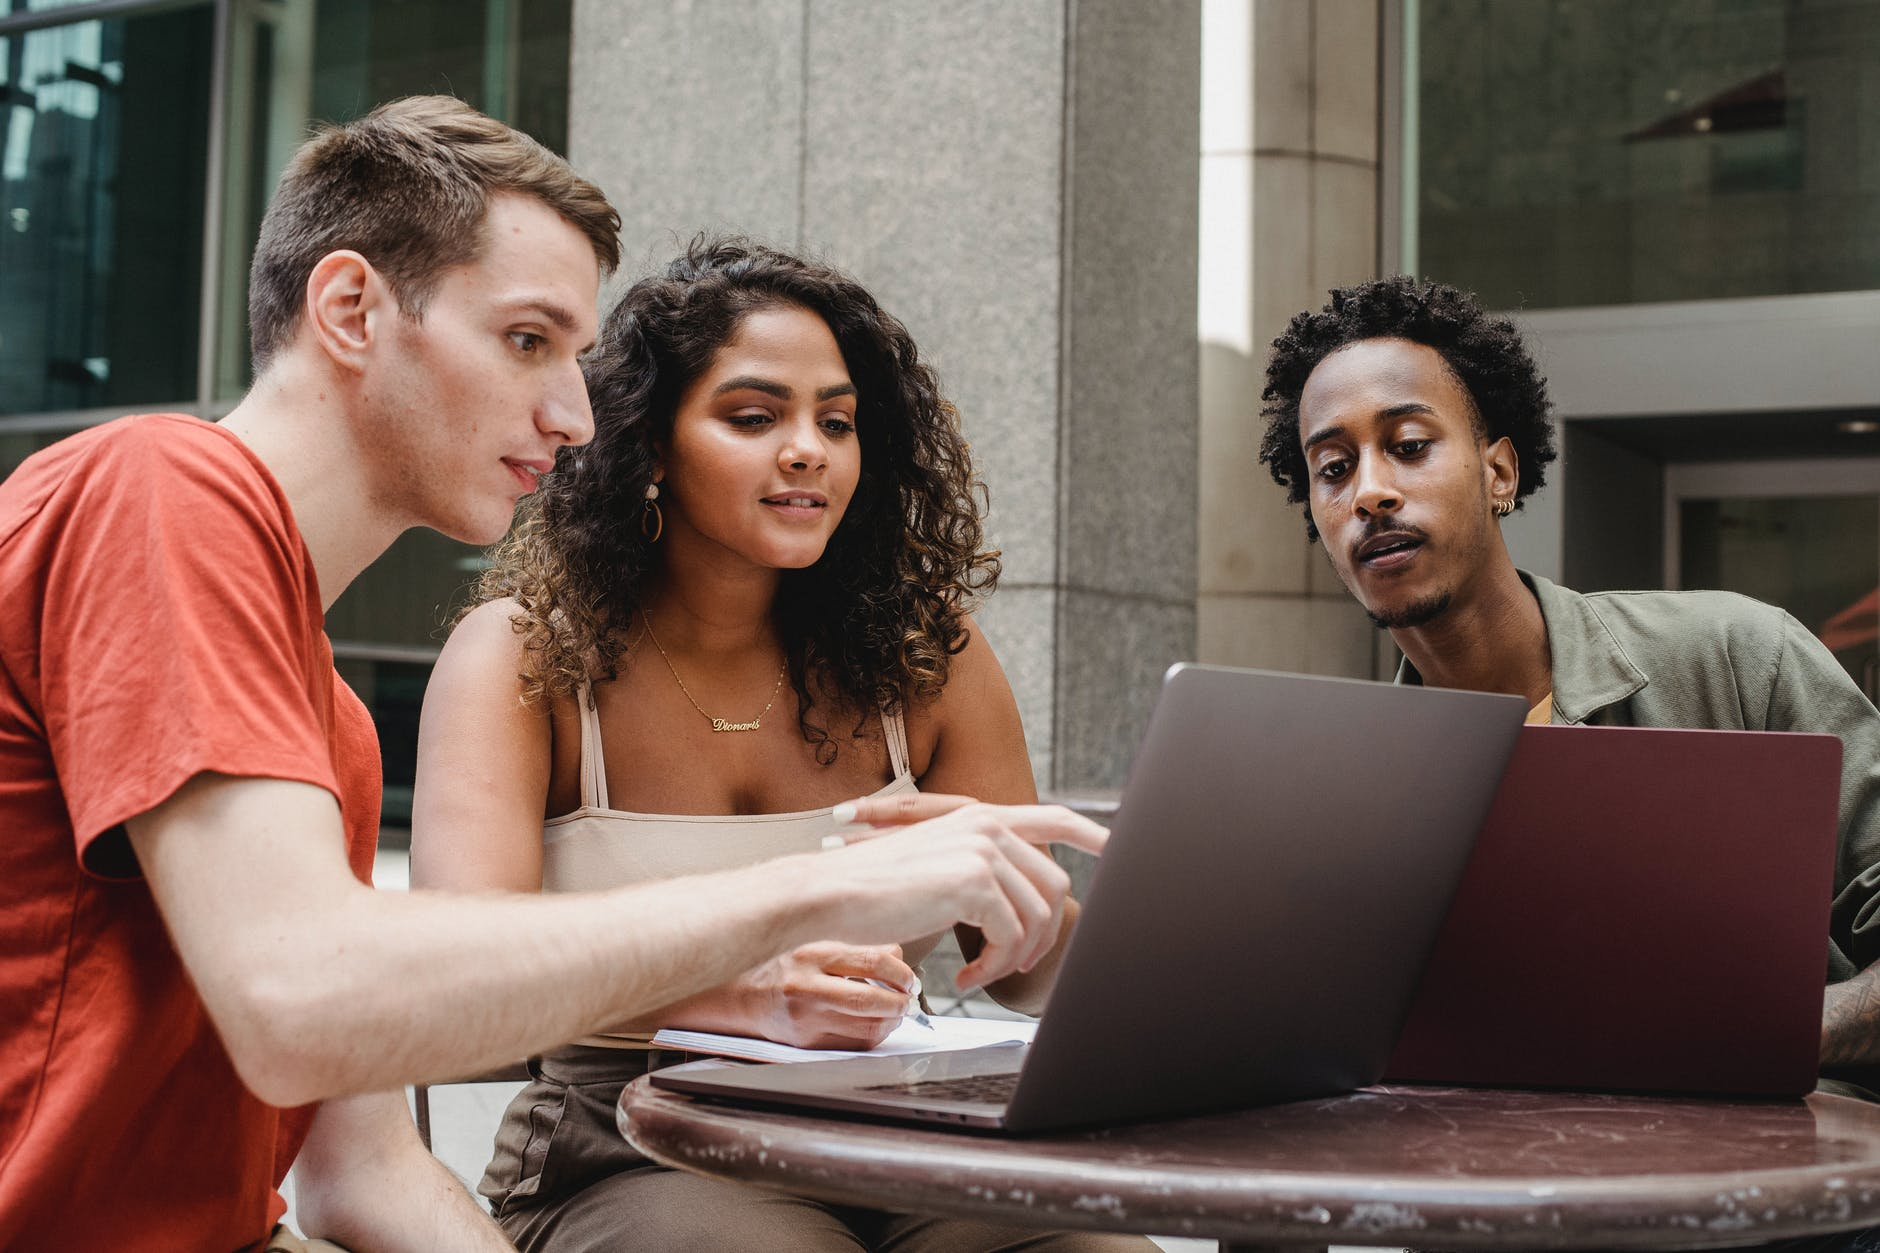 group of multiethnic coworkers discussing startup project on laptops together